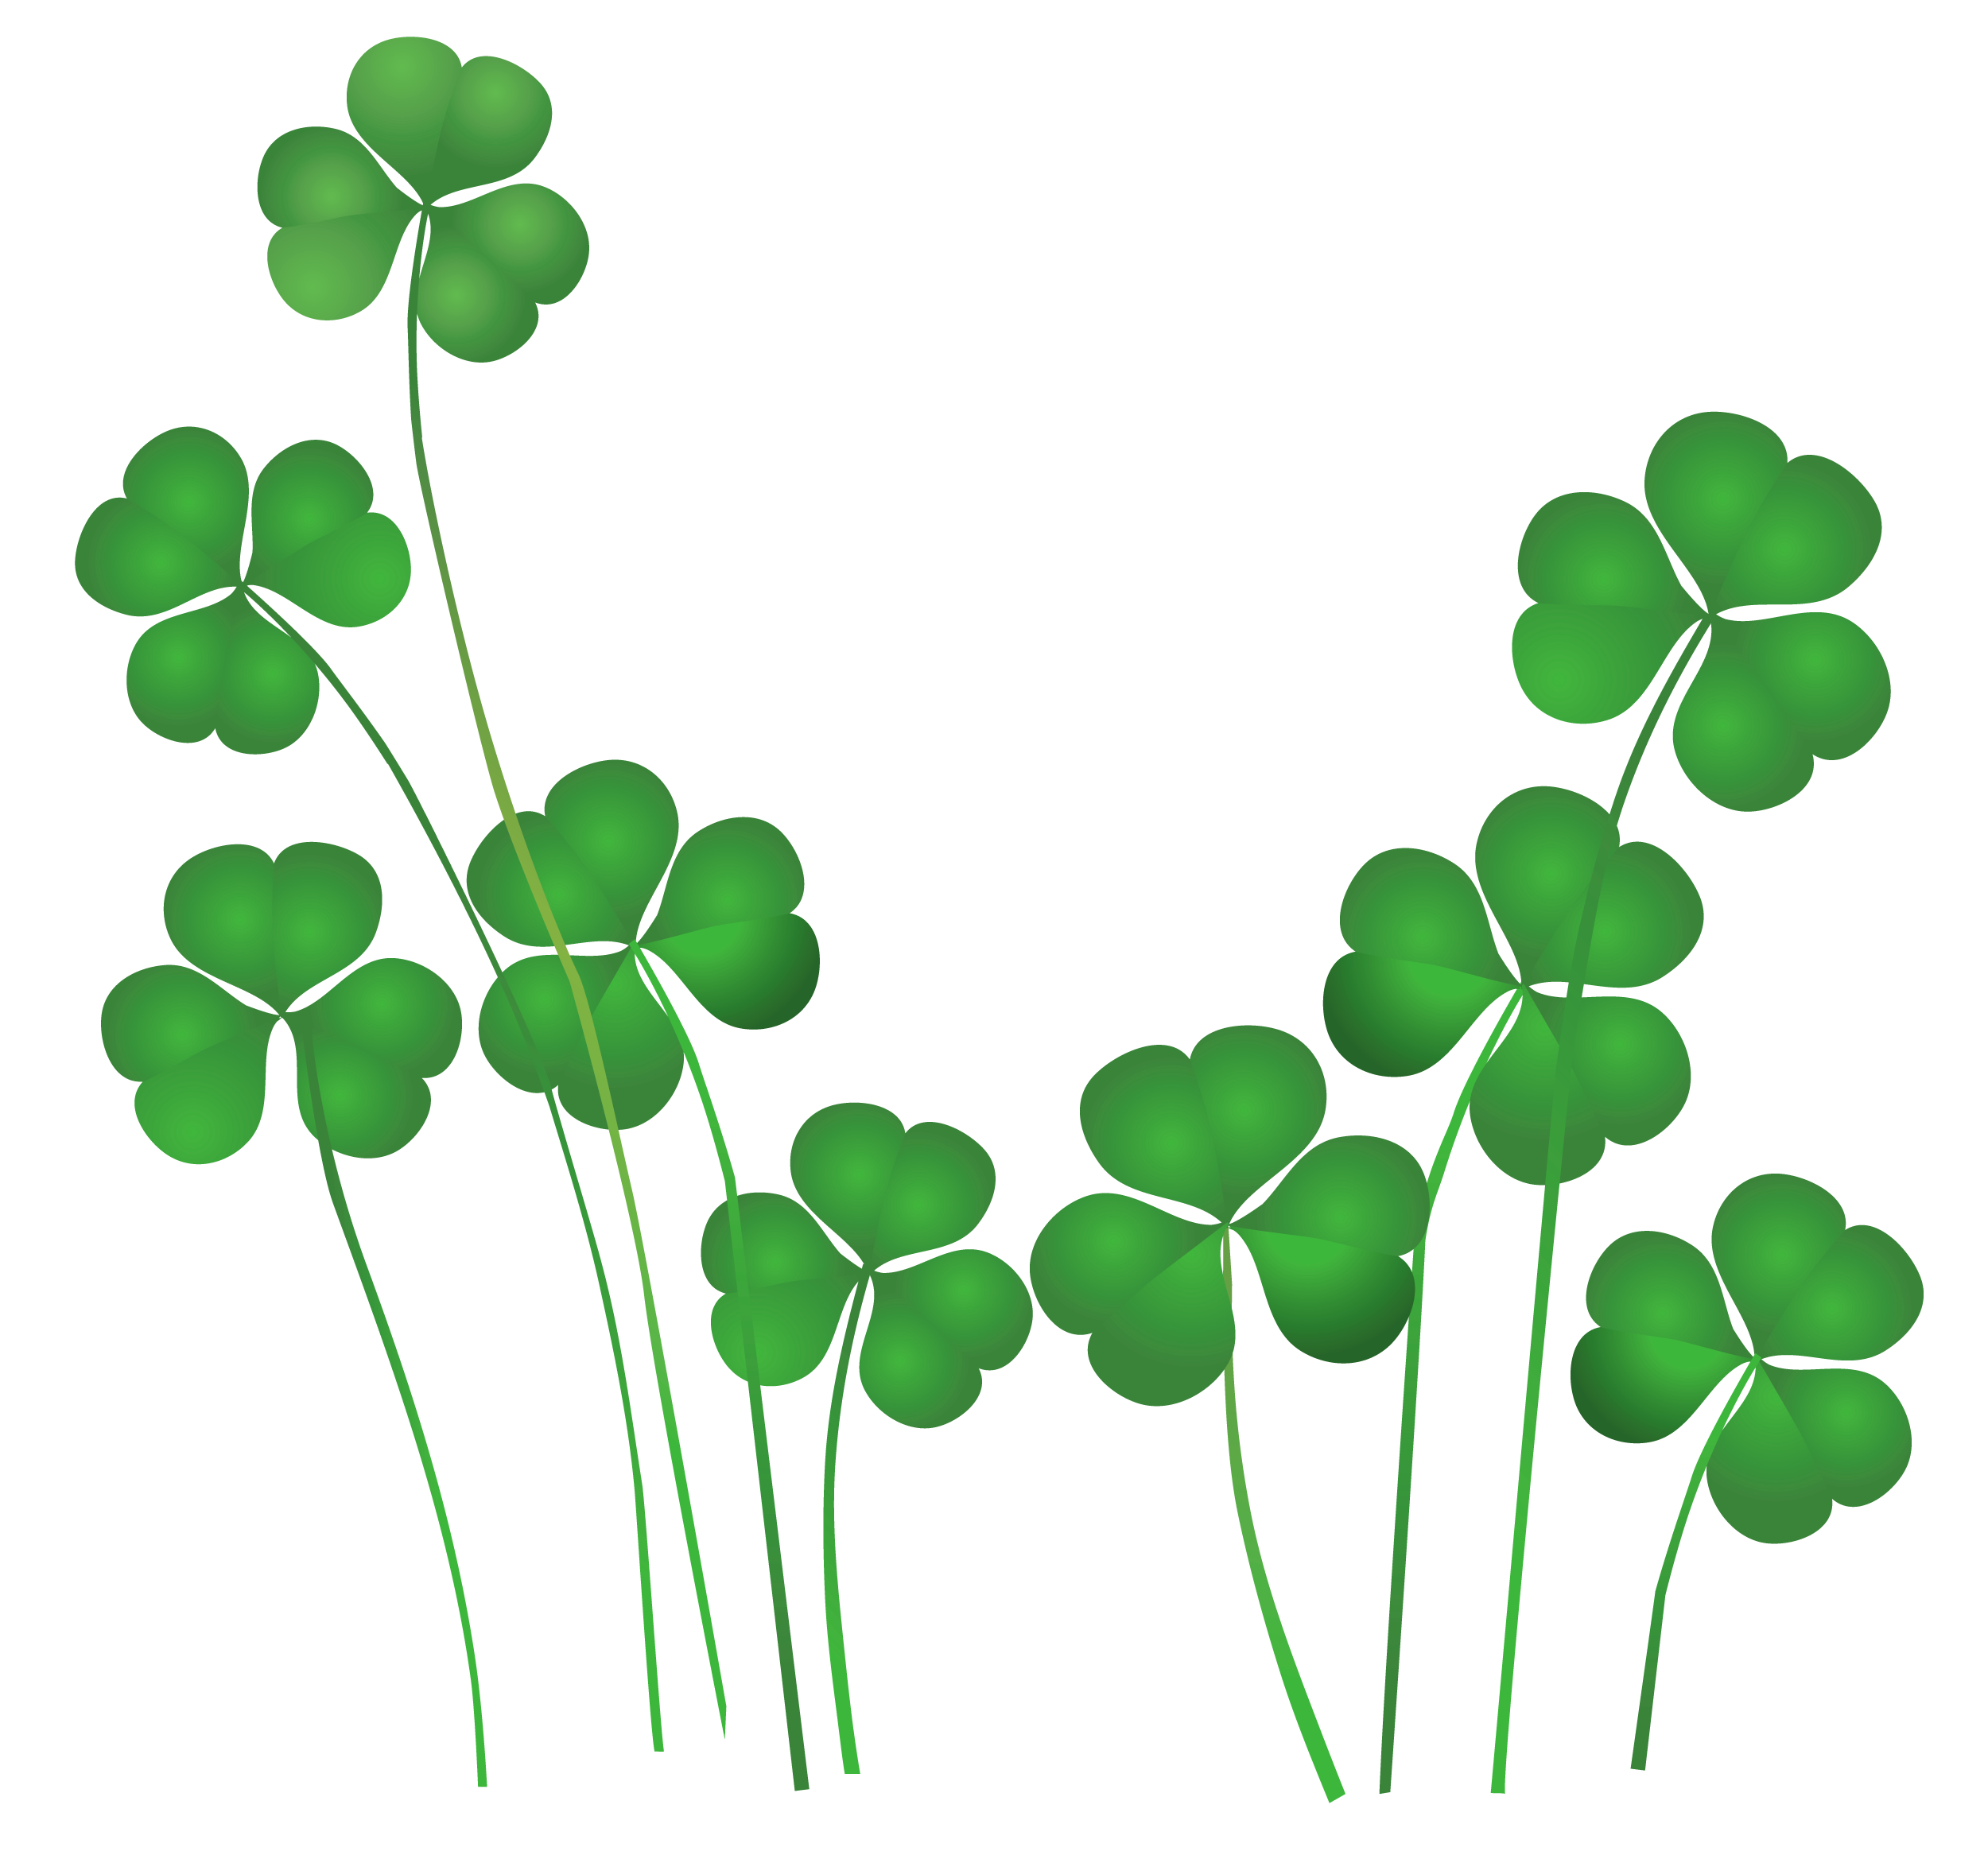 St patricks day shamrock clipart picture transparent library Pin by Terri on CLIPART | St patricks day clipart, St patricks day ... picture transparent library